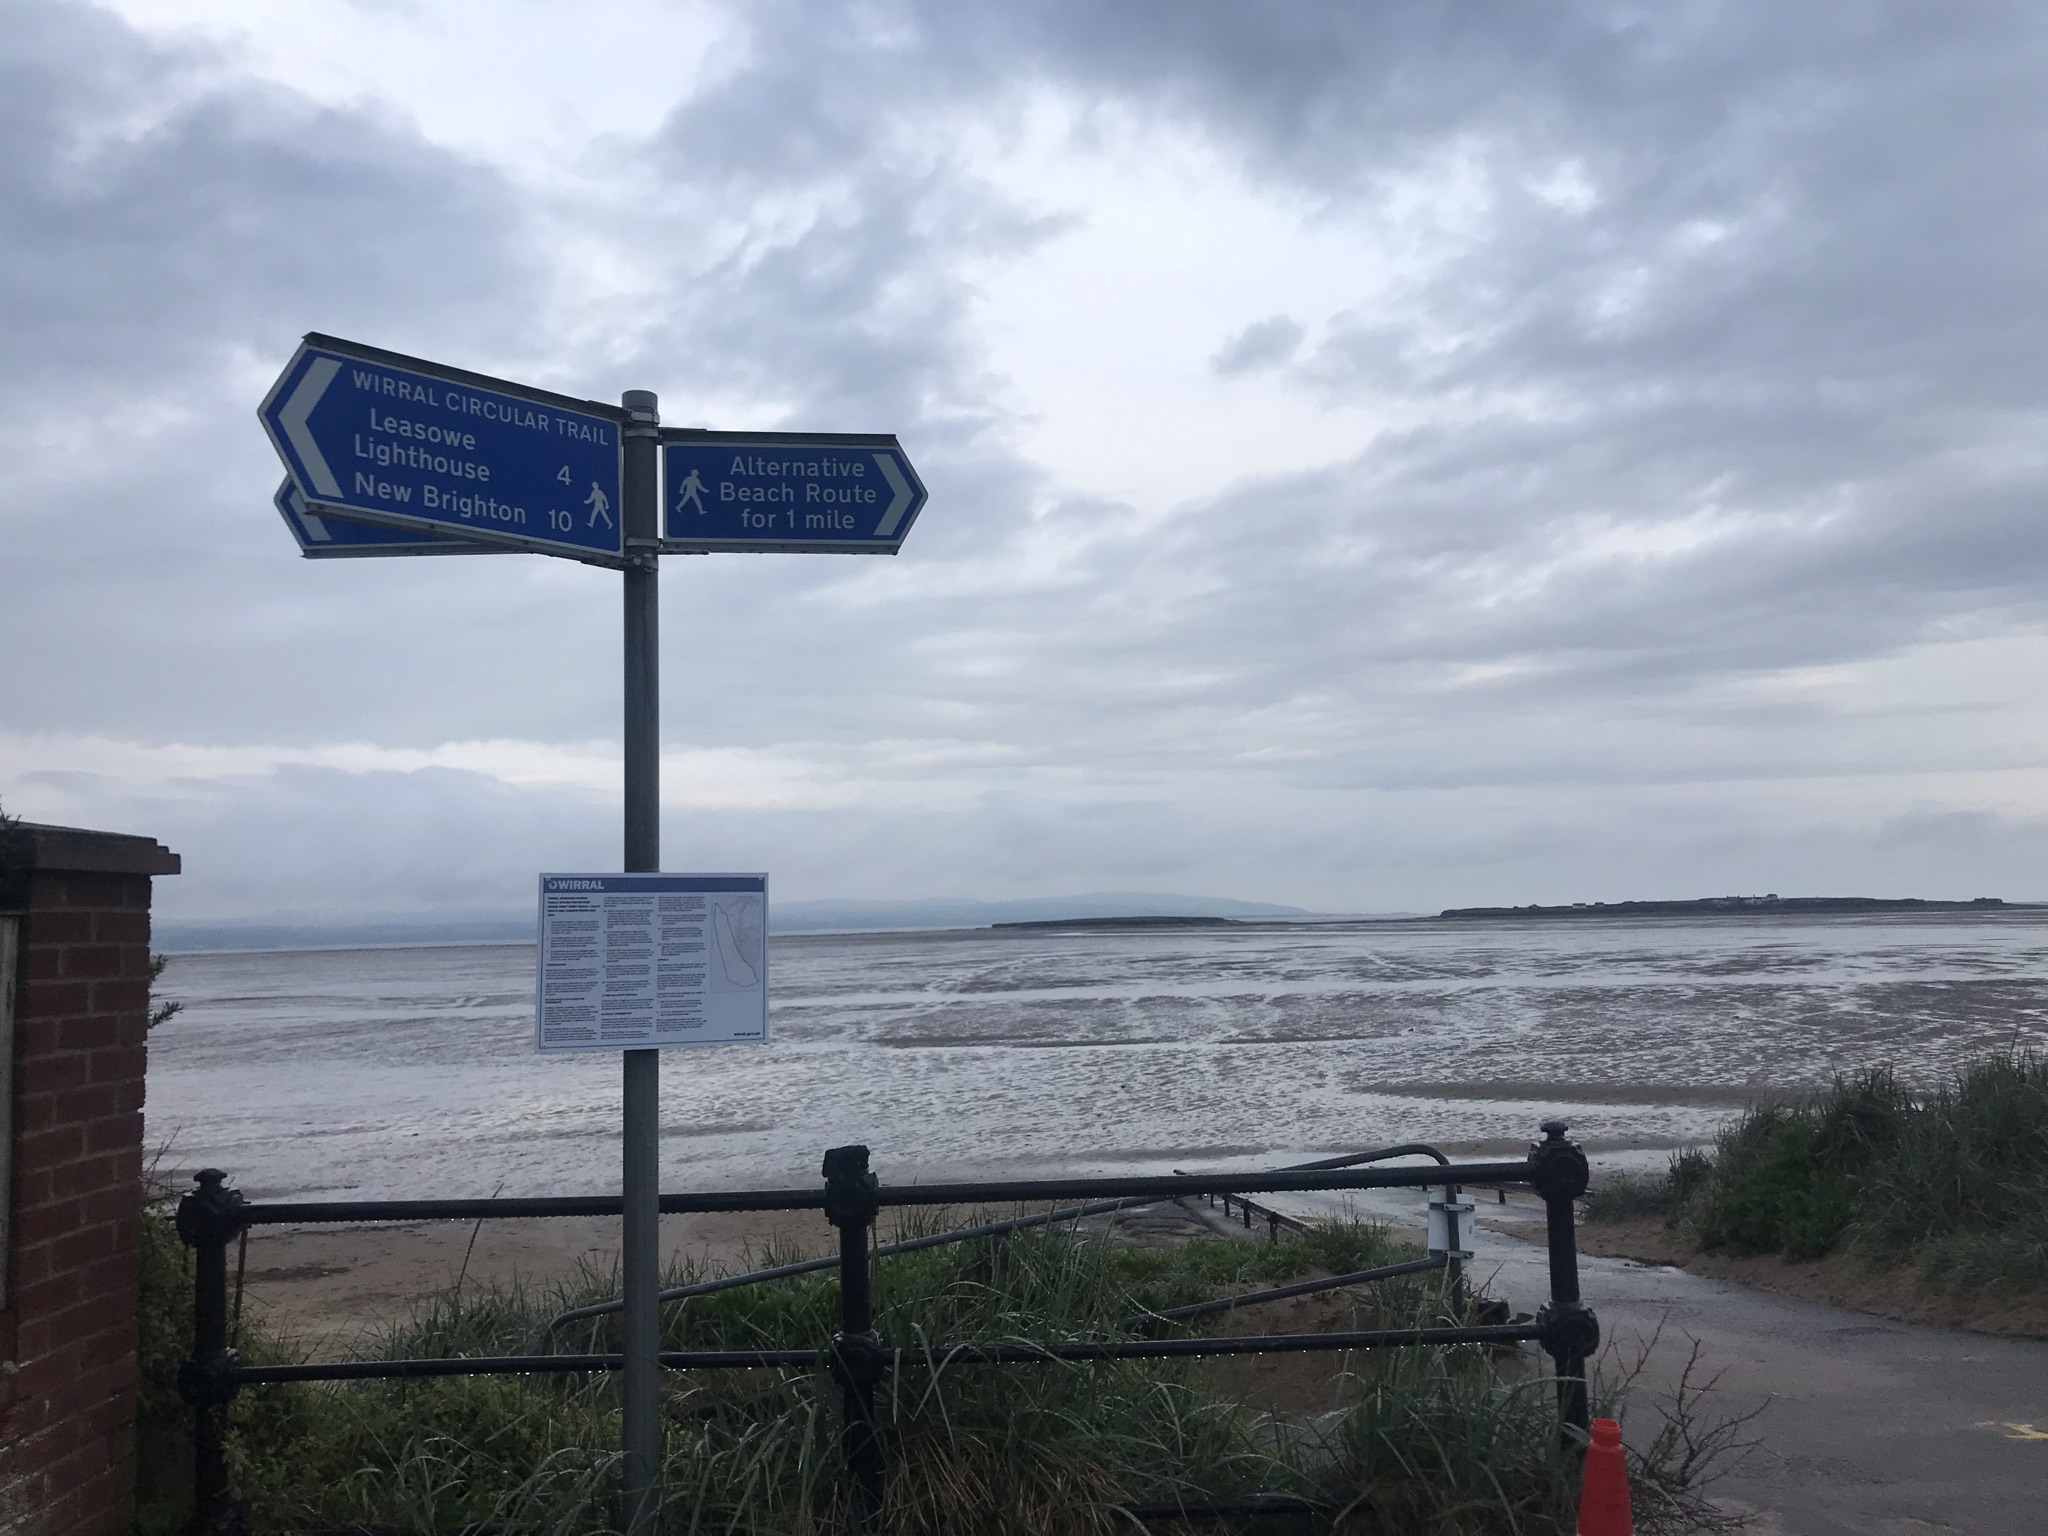 Blue sign post in front a beach. The tide is out and in the distance is hilbre island